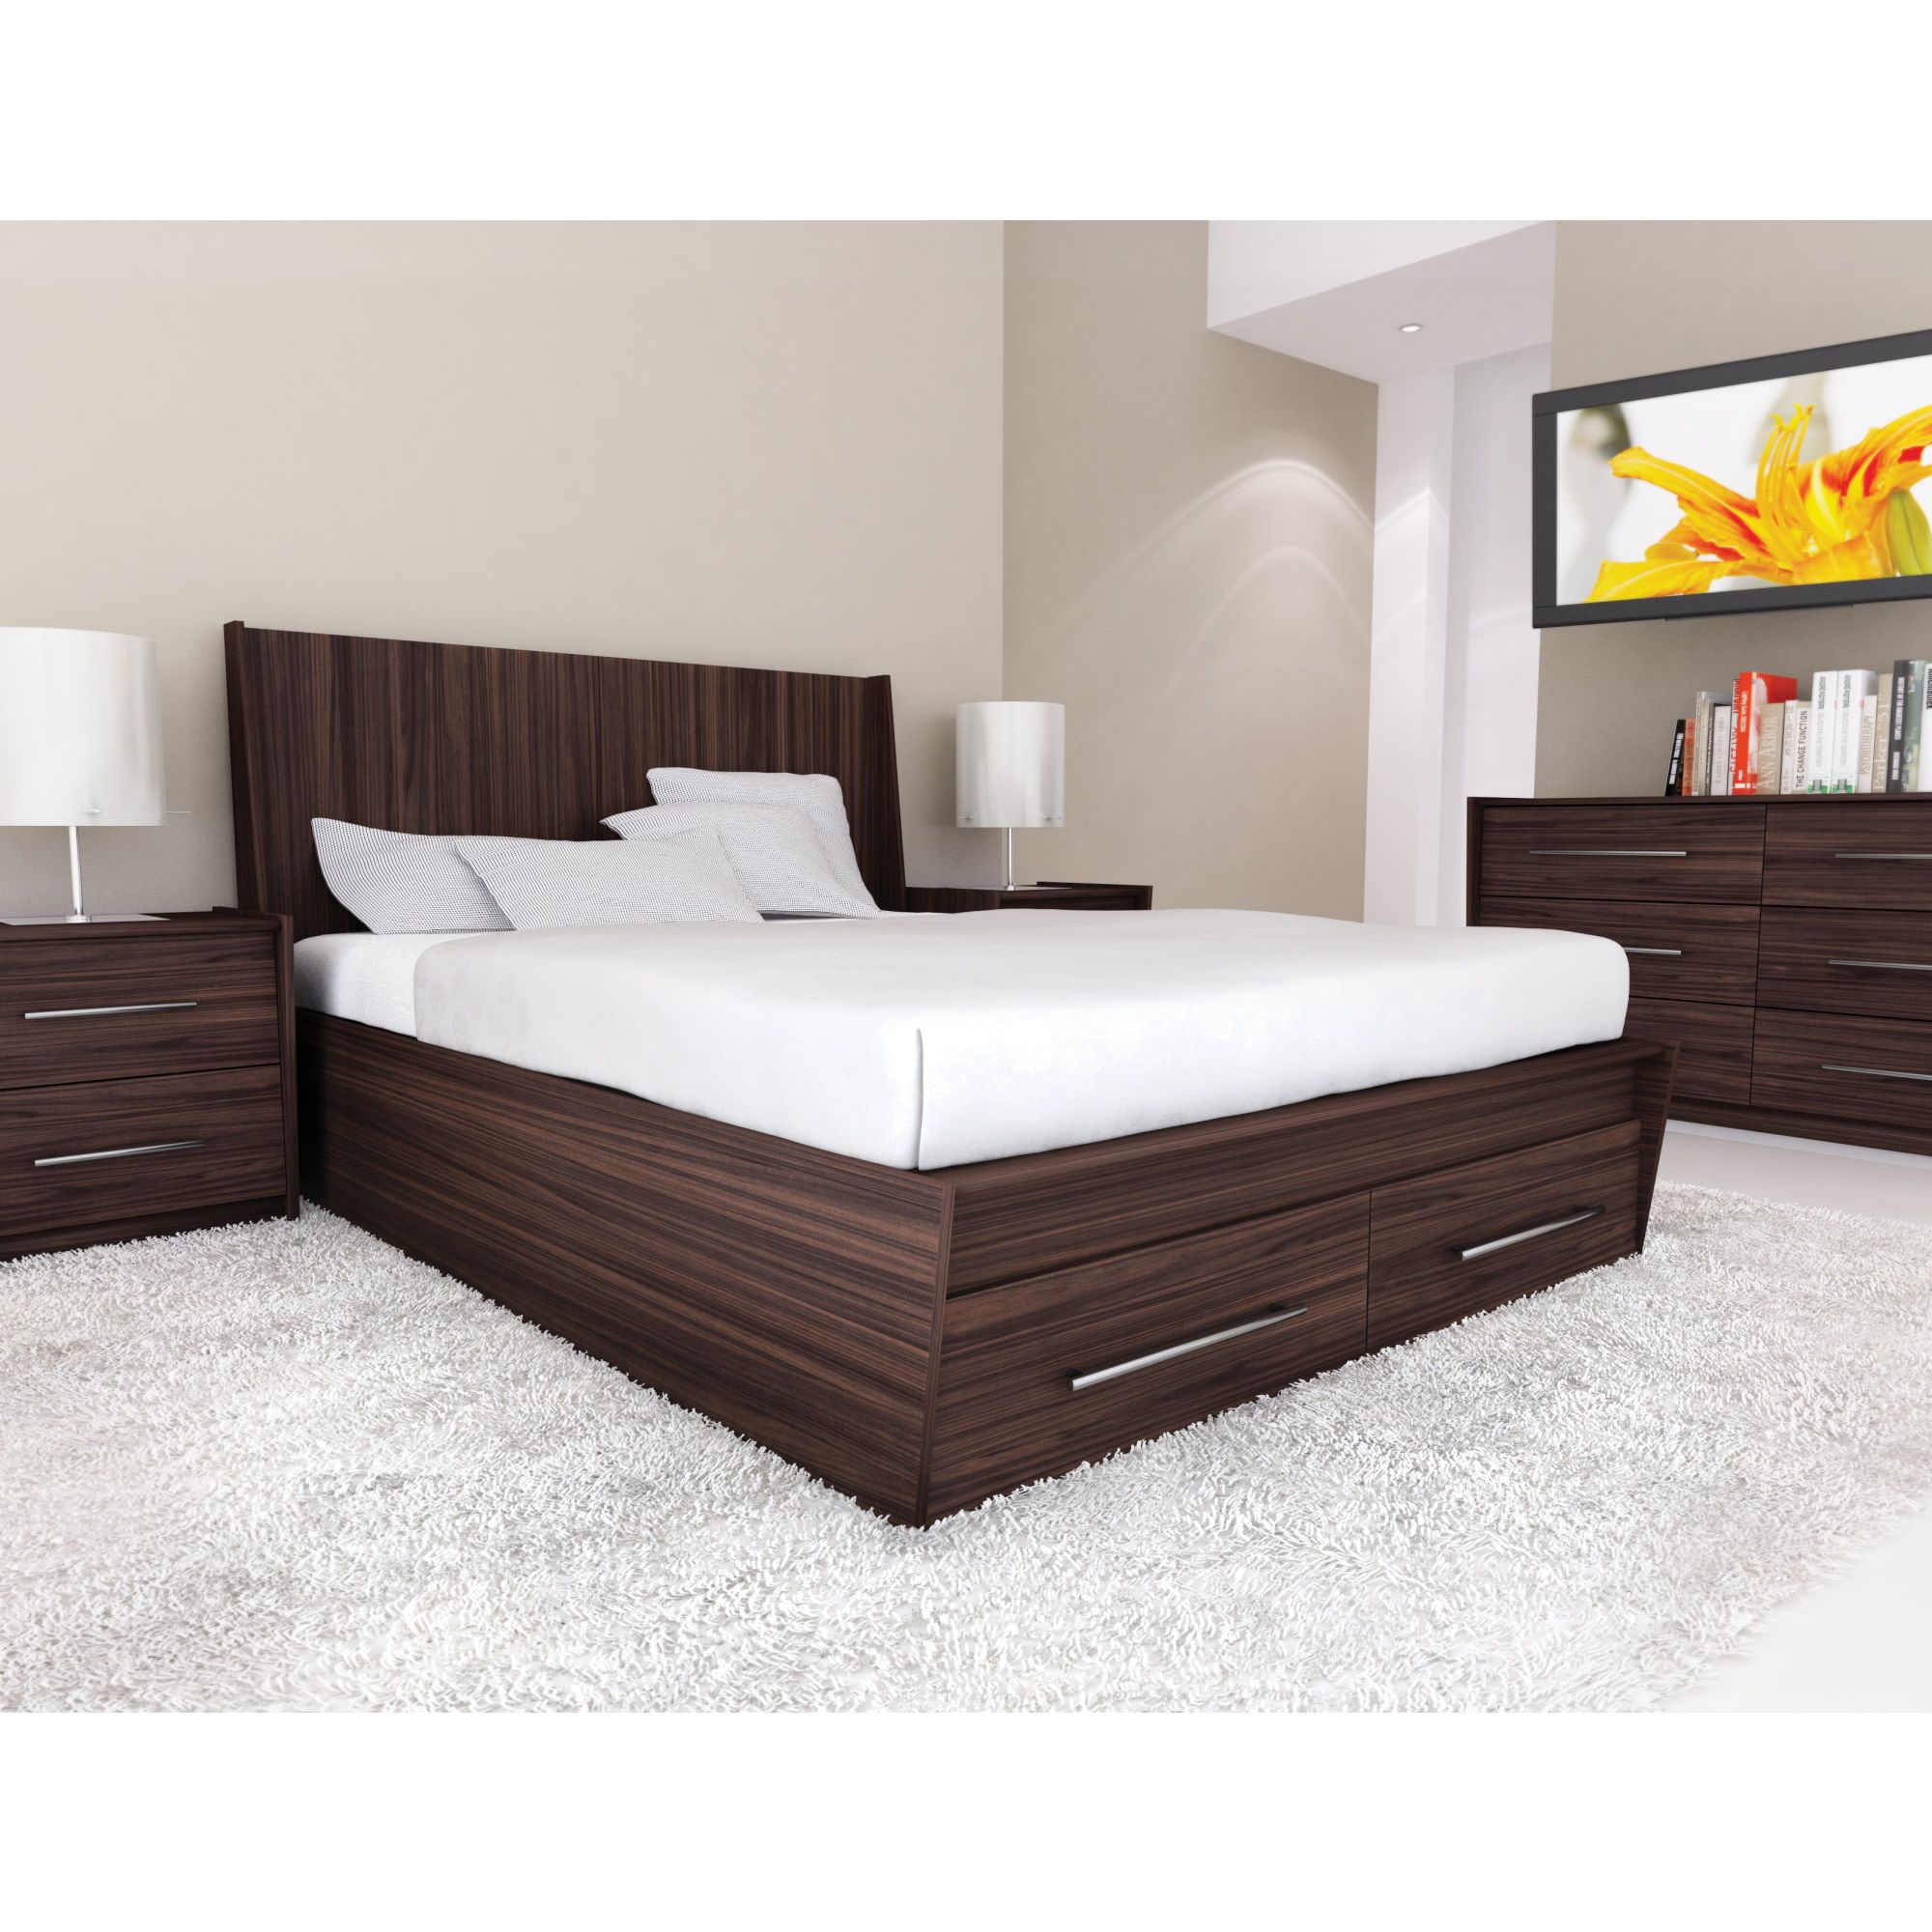 Bed designs for your comfortable bedroom interior design for Bedroom interior furniture